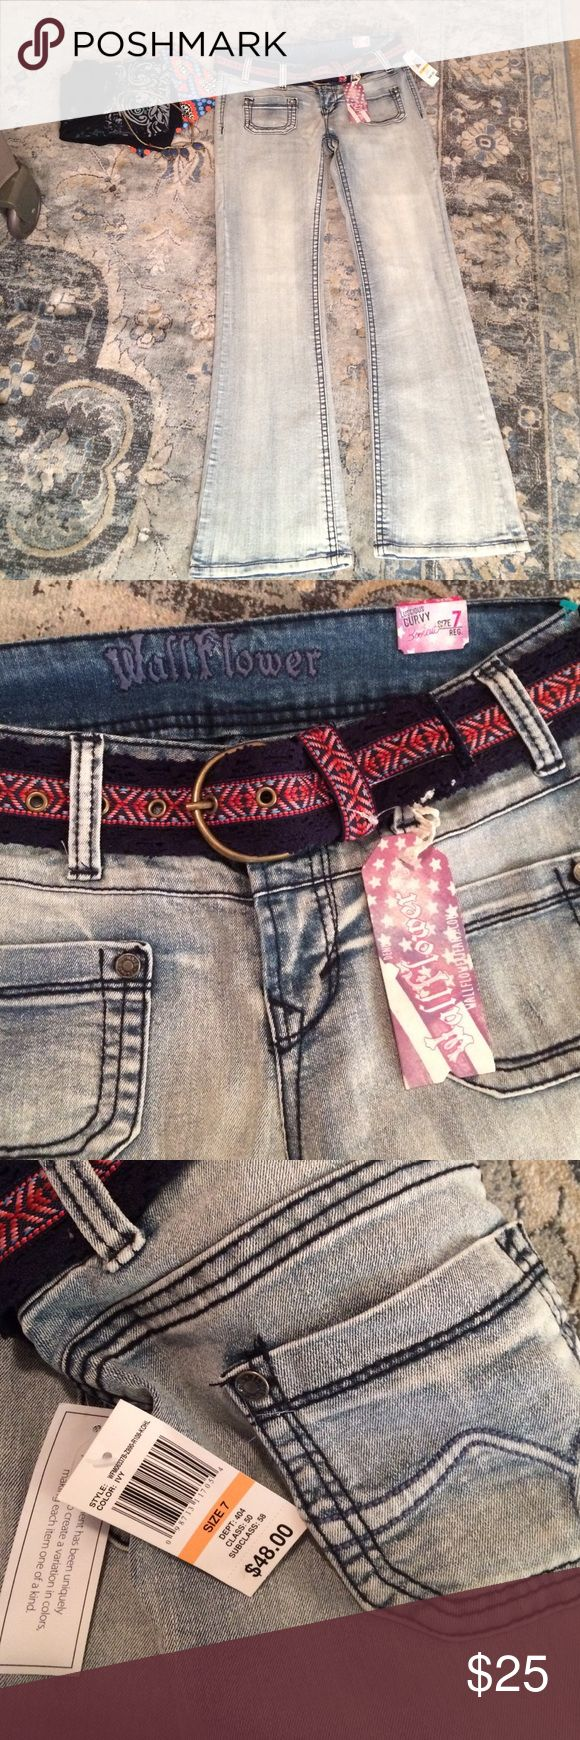 Wallflower Jeans NEW Sz 7 Nwts boot cut Sz 7 inseam 31, Per tag: Luscious Bootcut- Color Ivy - 18 inch boot cut leg opening- contour waistband hugs your curves - comes with boho hippie chic belt🌻 Wrong size so VERY open to offers. Wallflower Jeans Boot Cut